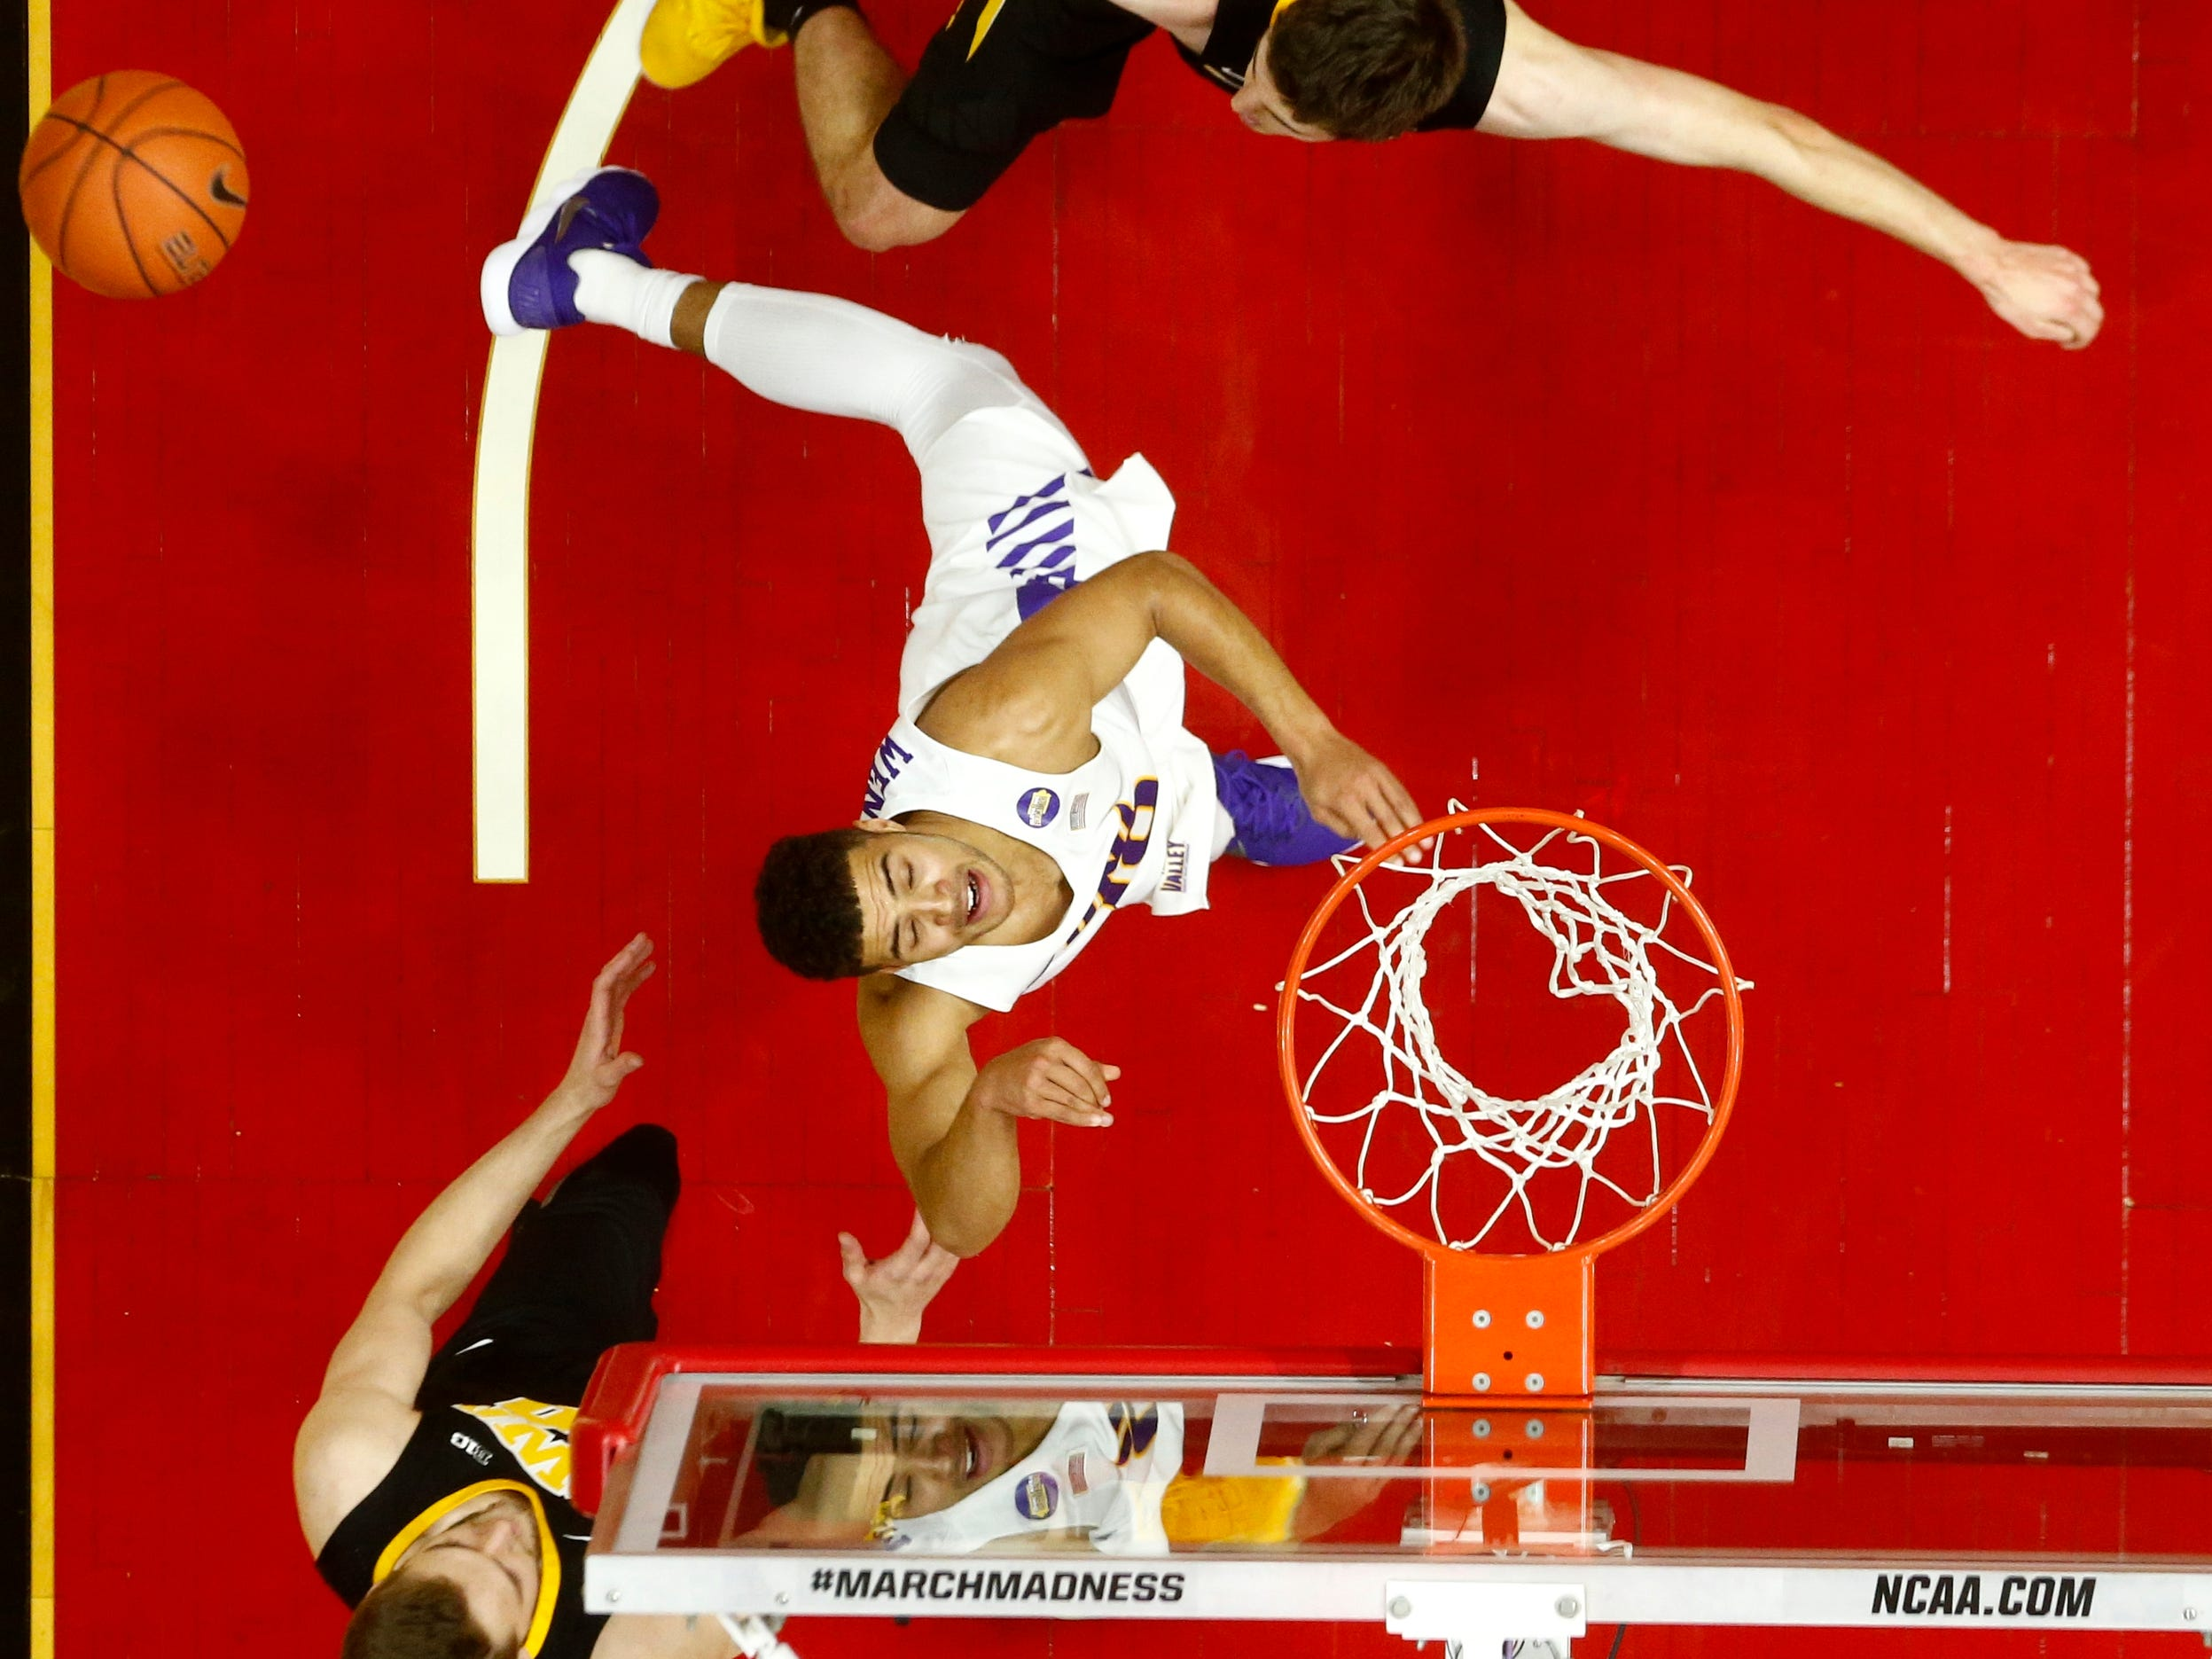 Iowa State's Nate Schuster (10) is fouled under the net during their basketball game at the Hy-Vee Classic on Saturday, Dec. 15, 2018, in Des Moines. Iowa would go on to defeat UNI 77-54.